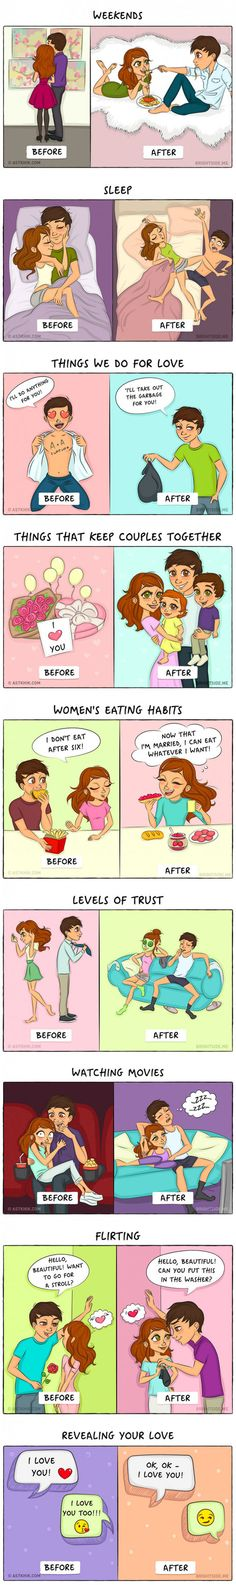 Relationship Before and After Cartoon